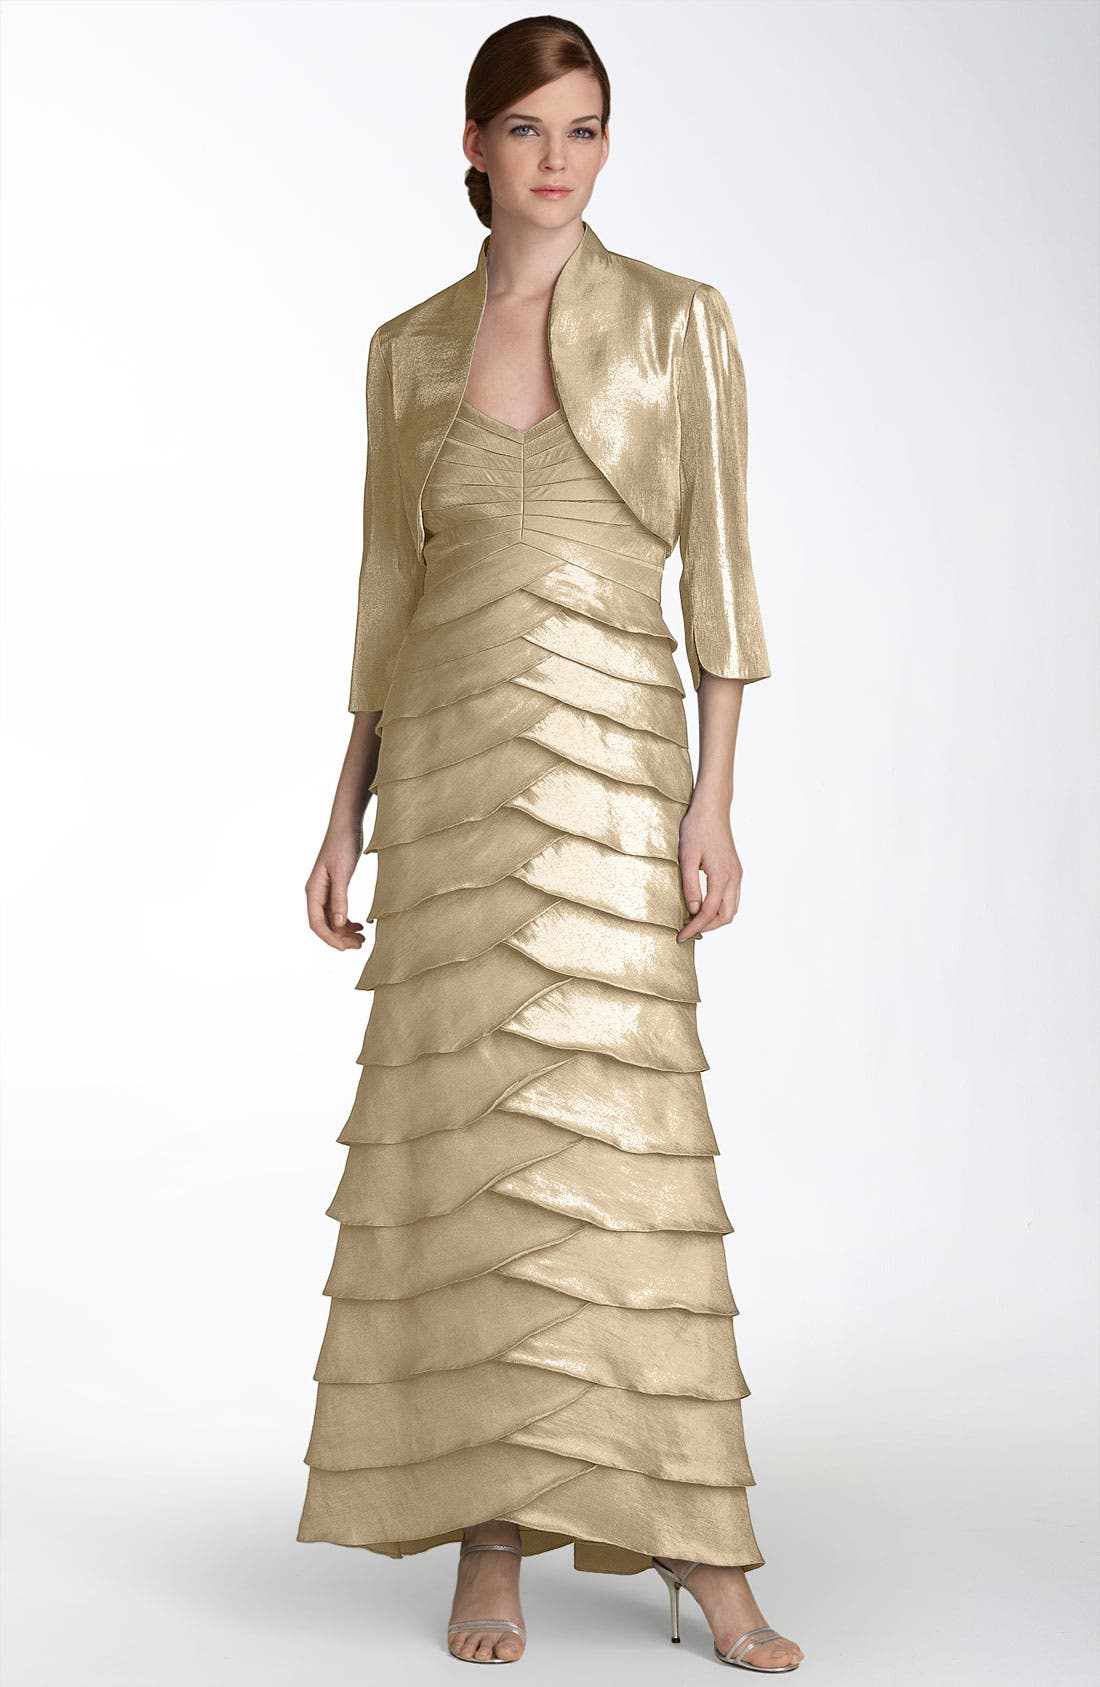 Alternate Image 1 Selected - Adrianna Papell Evening Shutter Pleat Gown with Bolero Jacket (Petite)